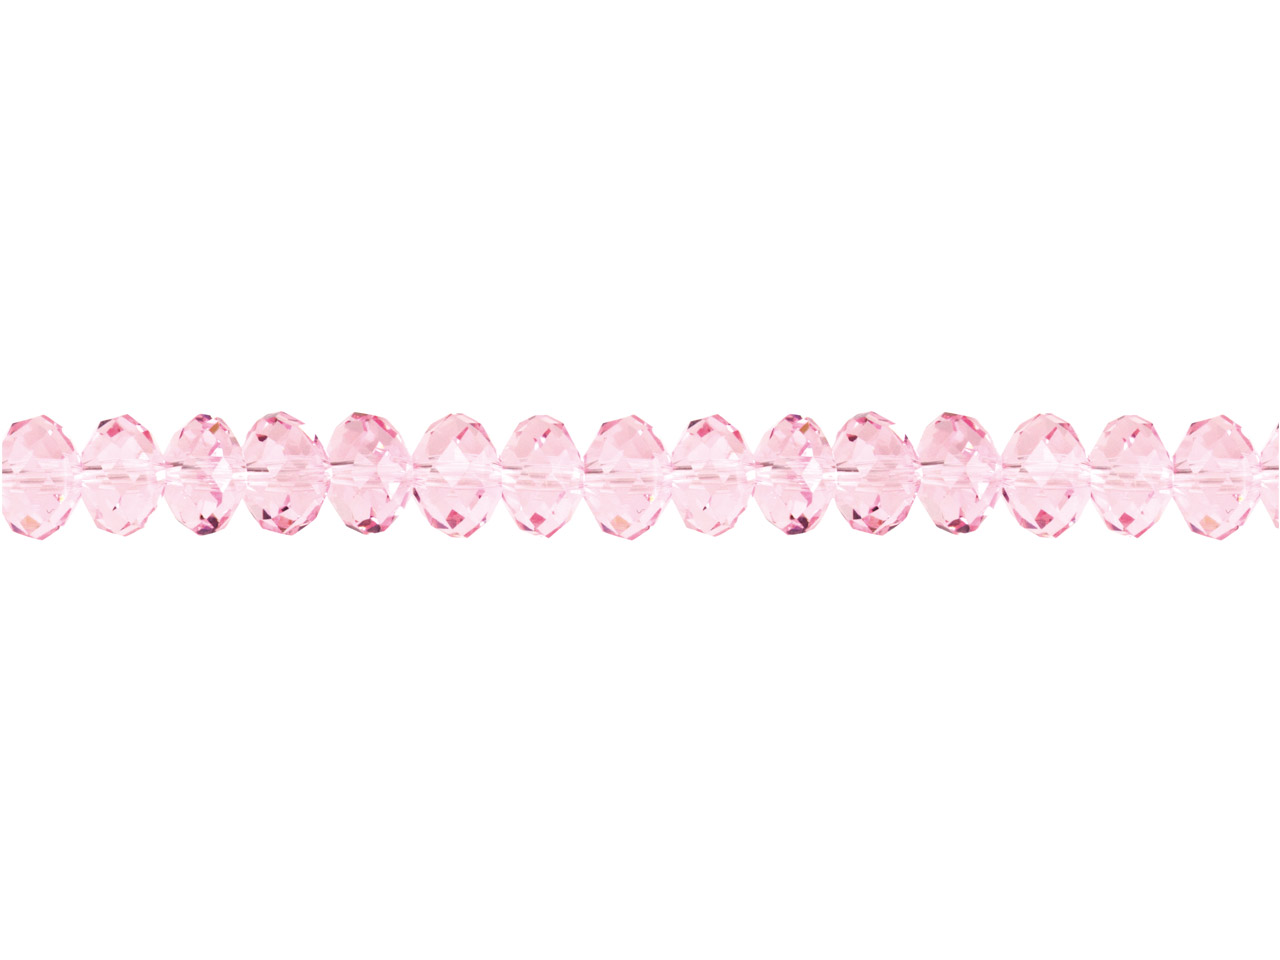 Crystal Faceted Rondelle Pink 6x8mm Beads, 16